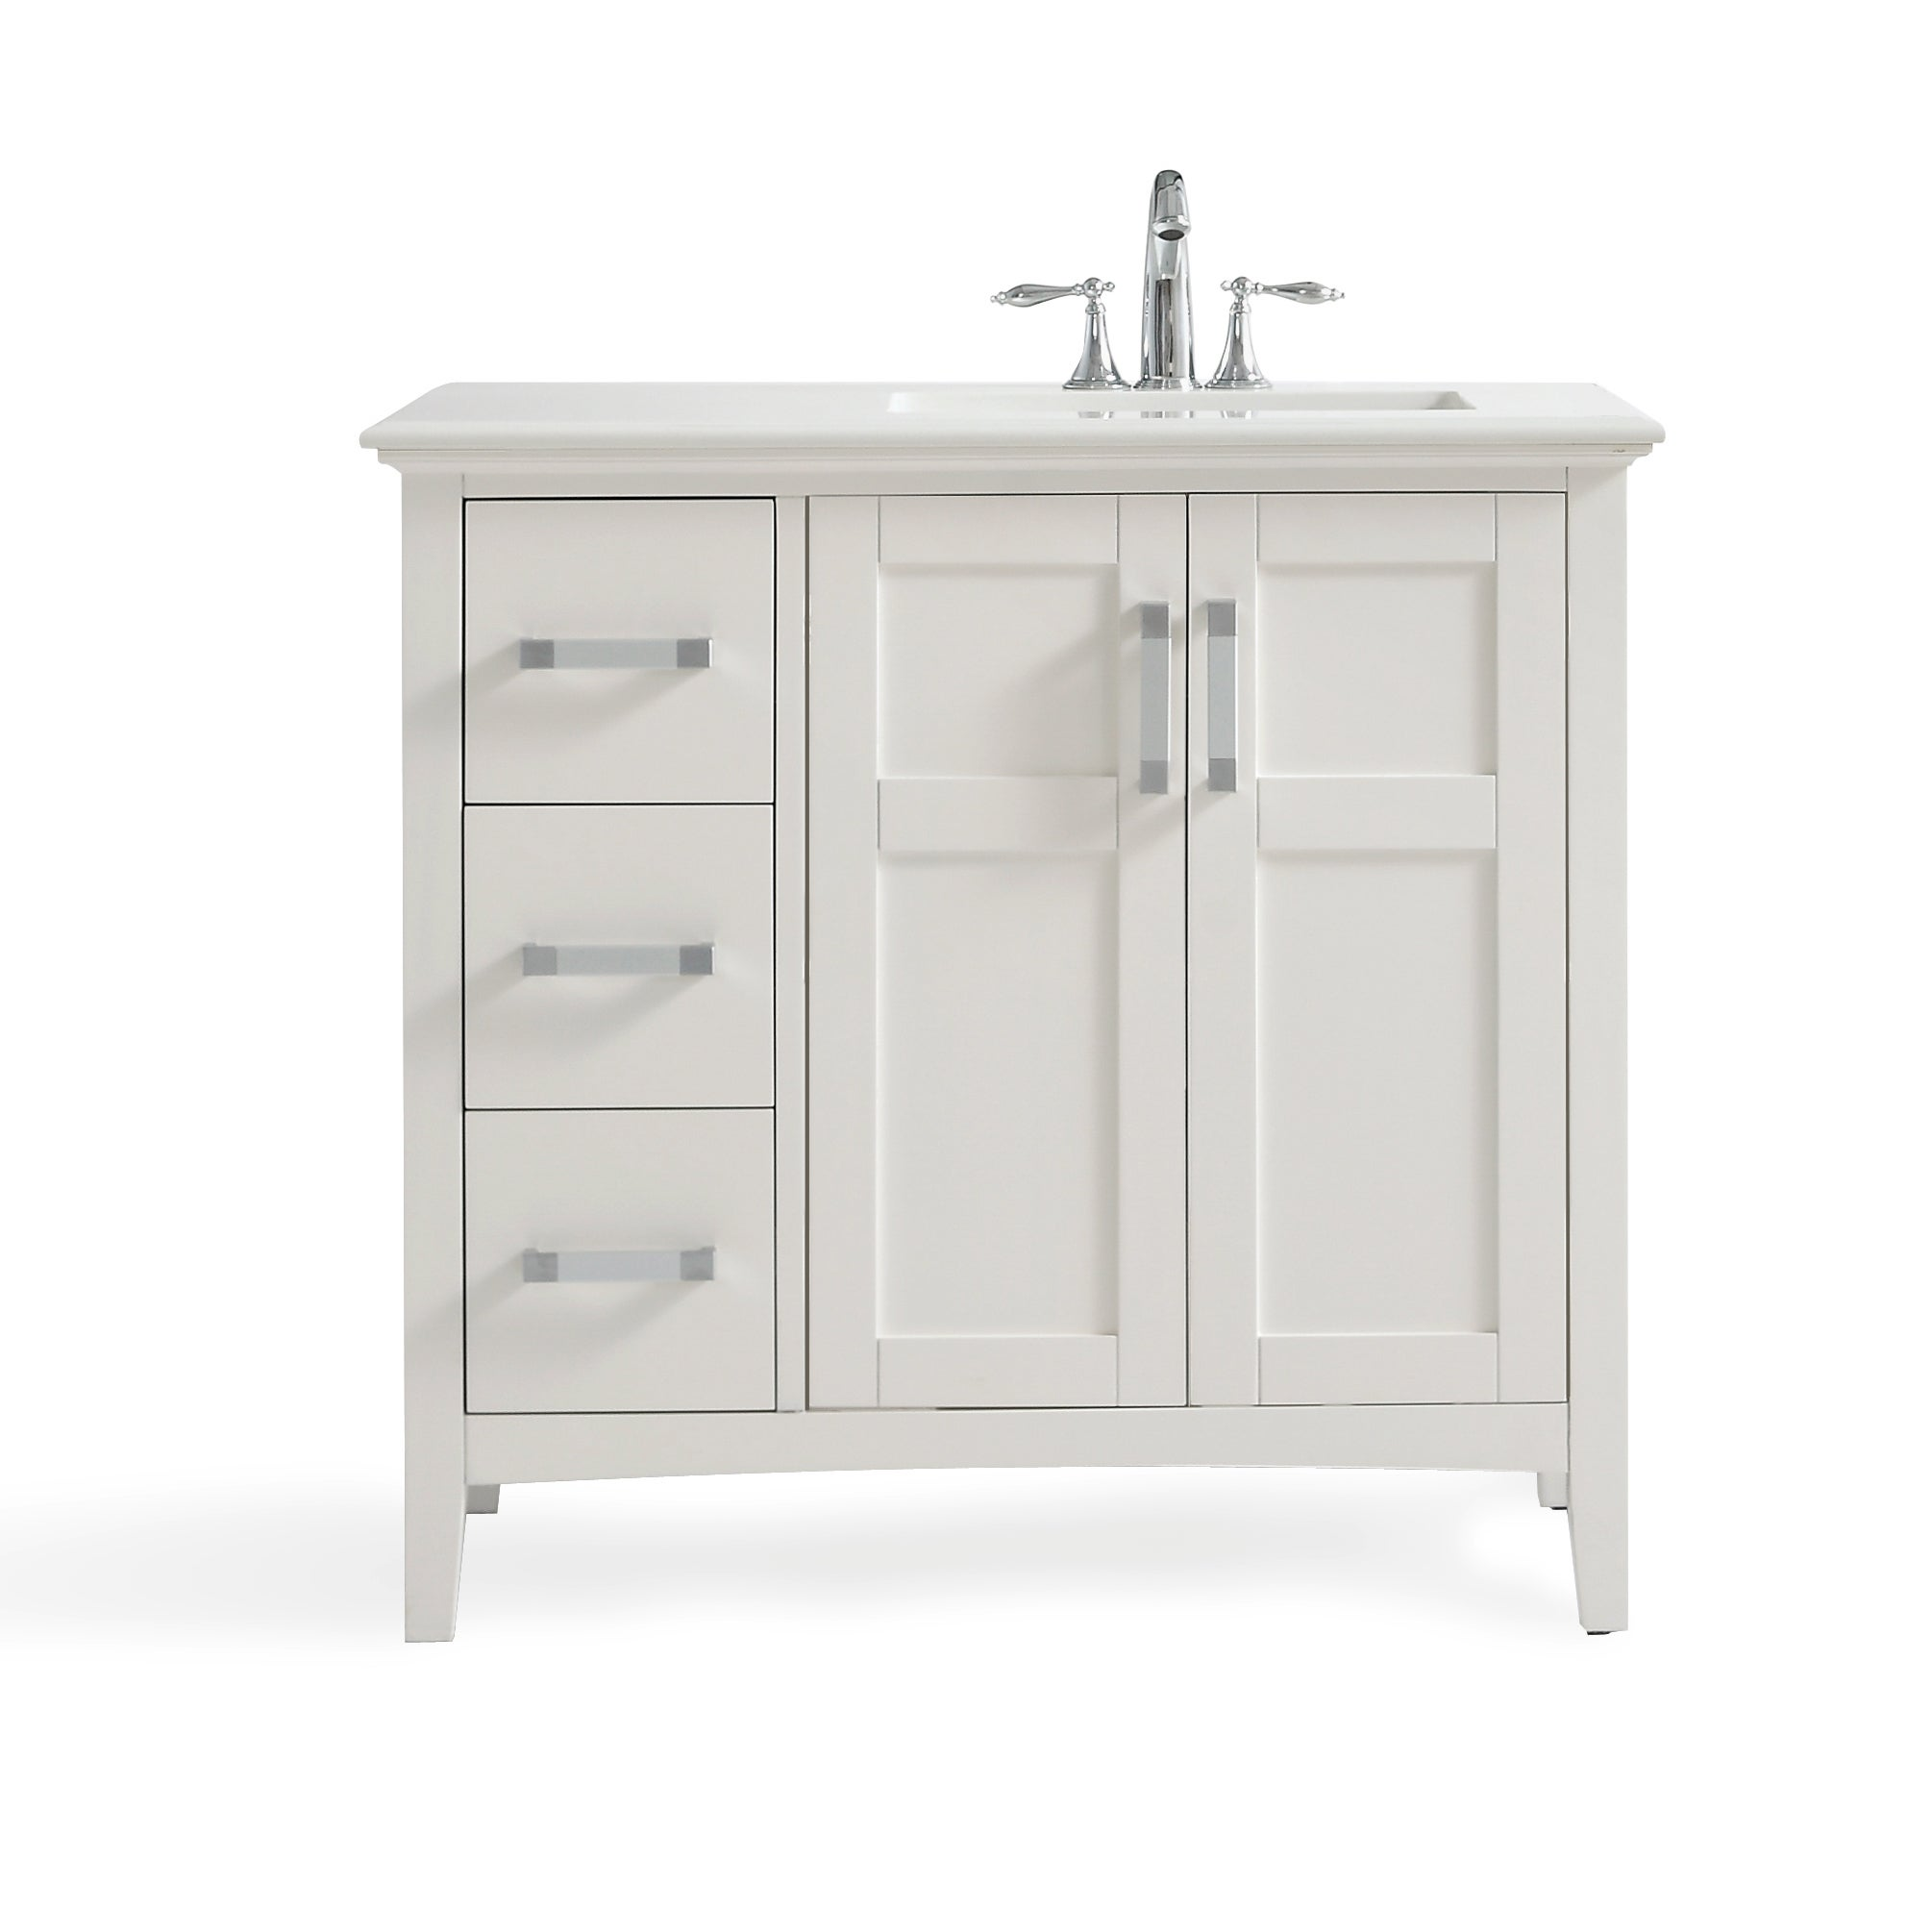 66 inch bathroom vanity. WYNDENHALL Salem 36-inch Left Offset Bath Vanity In White With Quartz Marble Top - Free Shipping Today Overstock 20649127 66 Inch Bathroom M